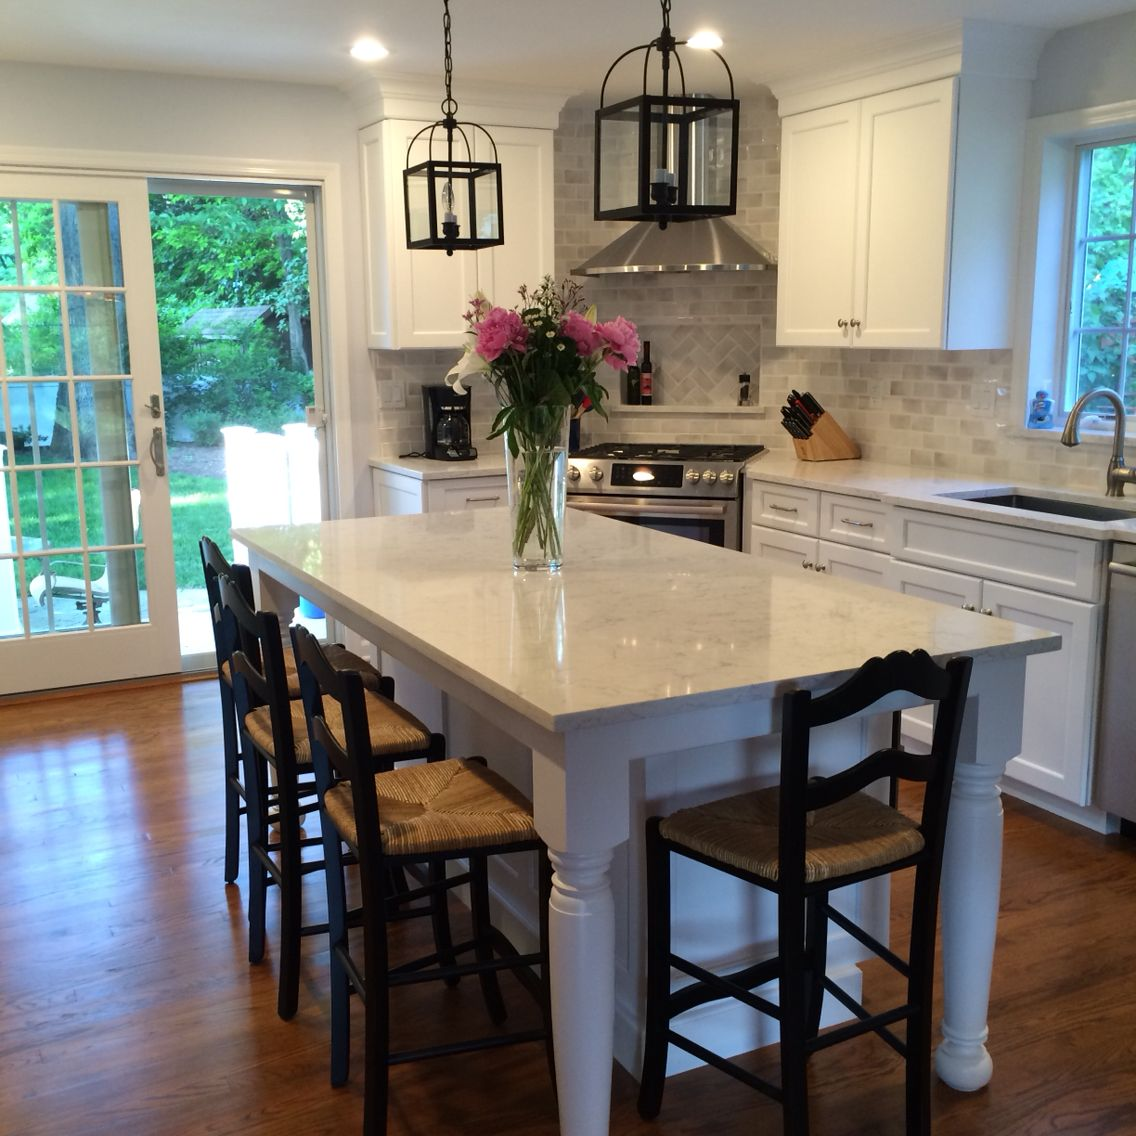 Traditional Open Concept Kitchen: Open Concept Kitchen And Dining Room. White Cabinets And